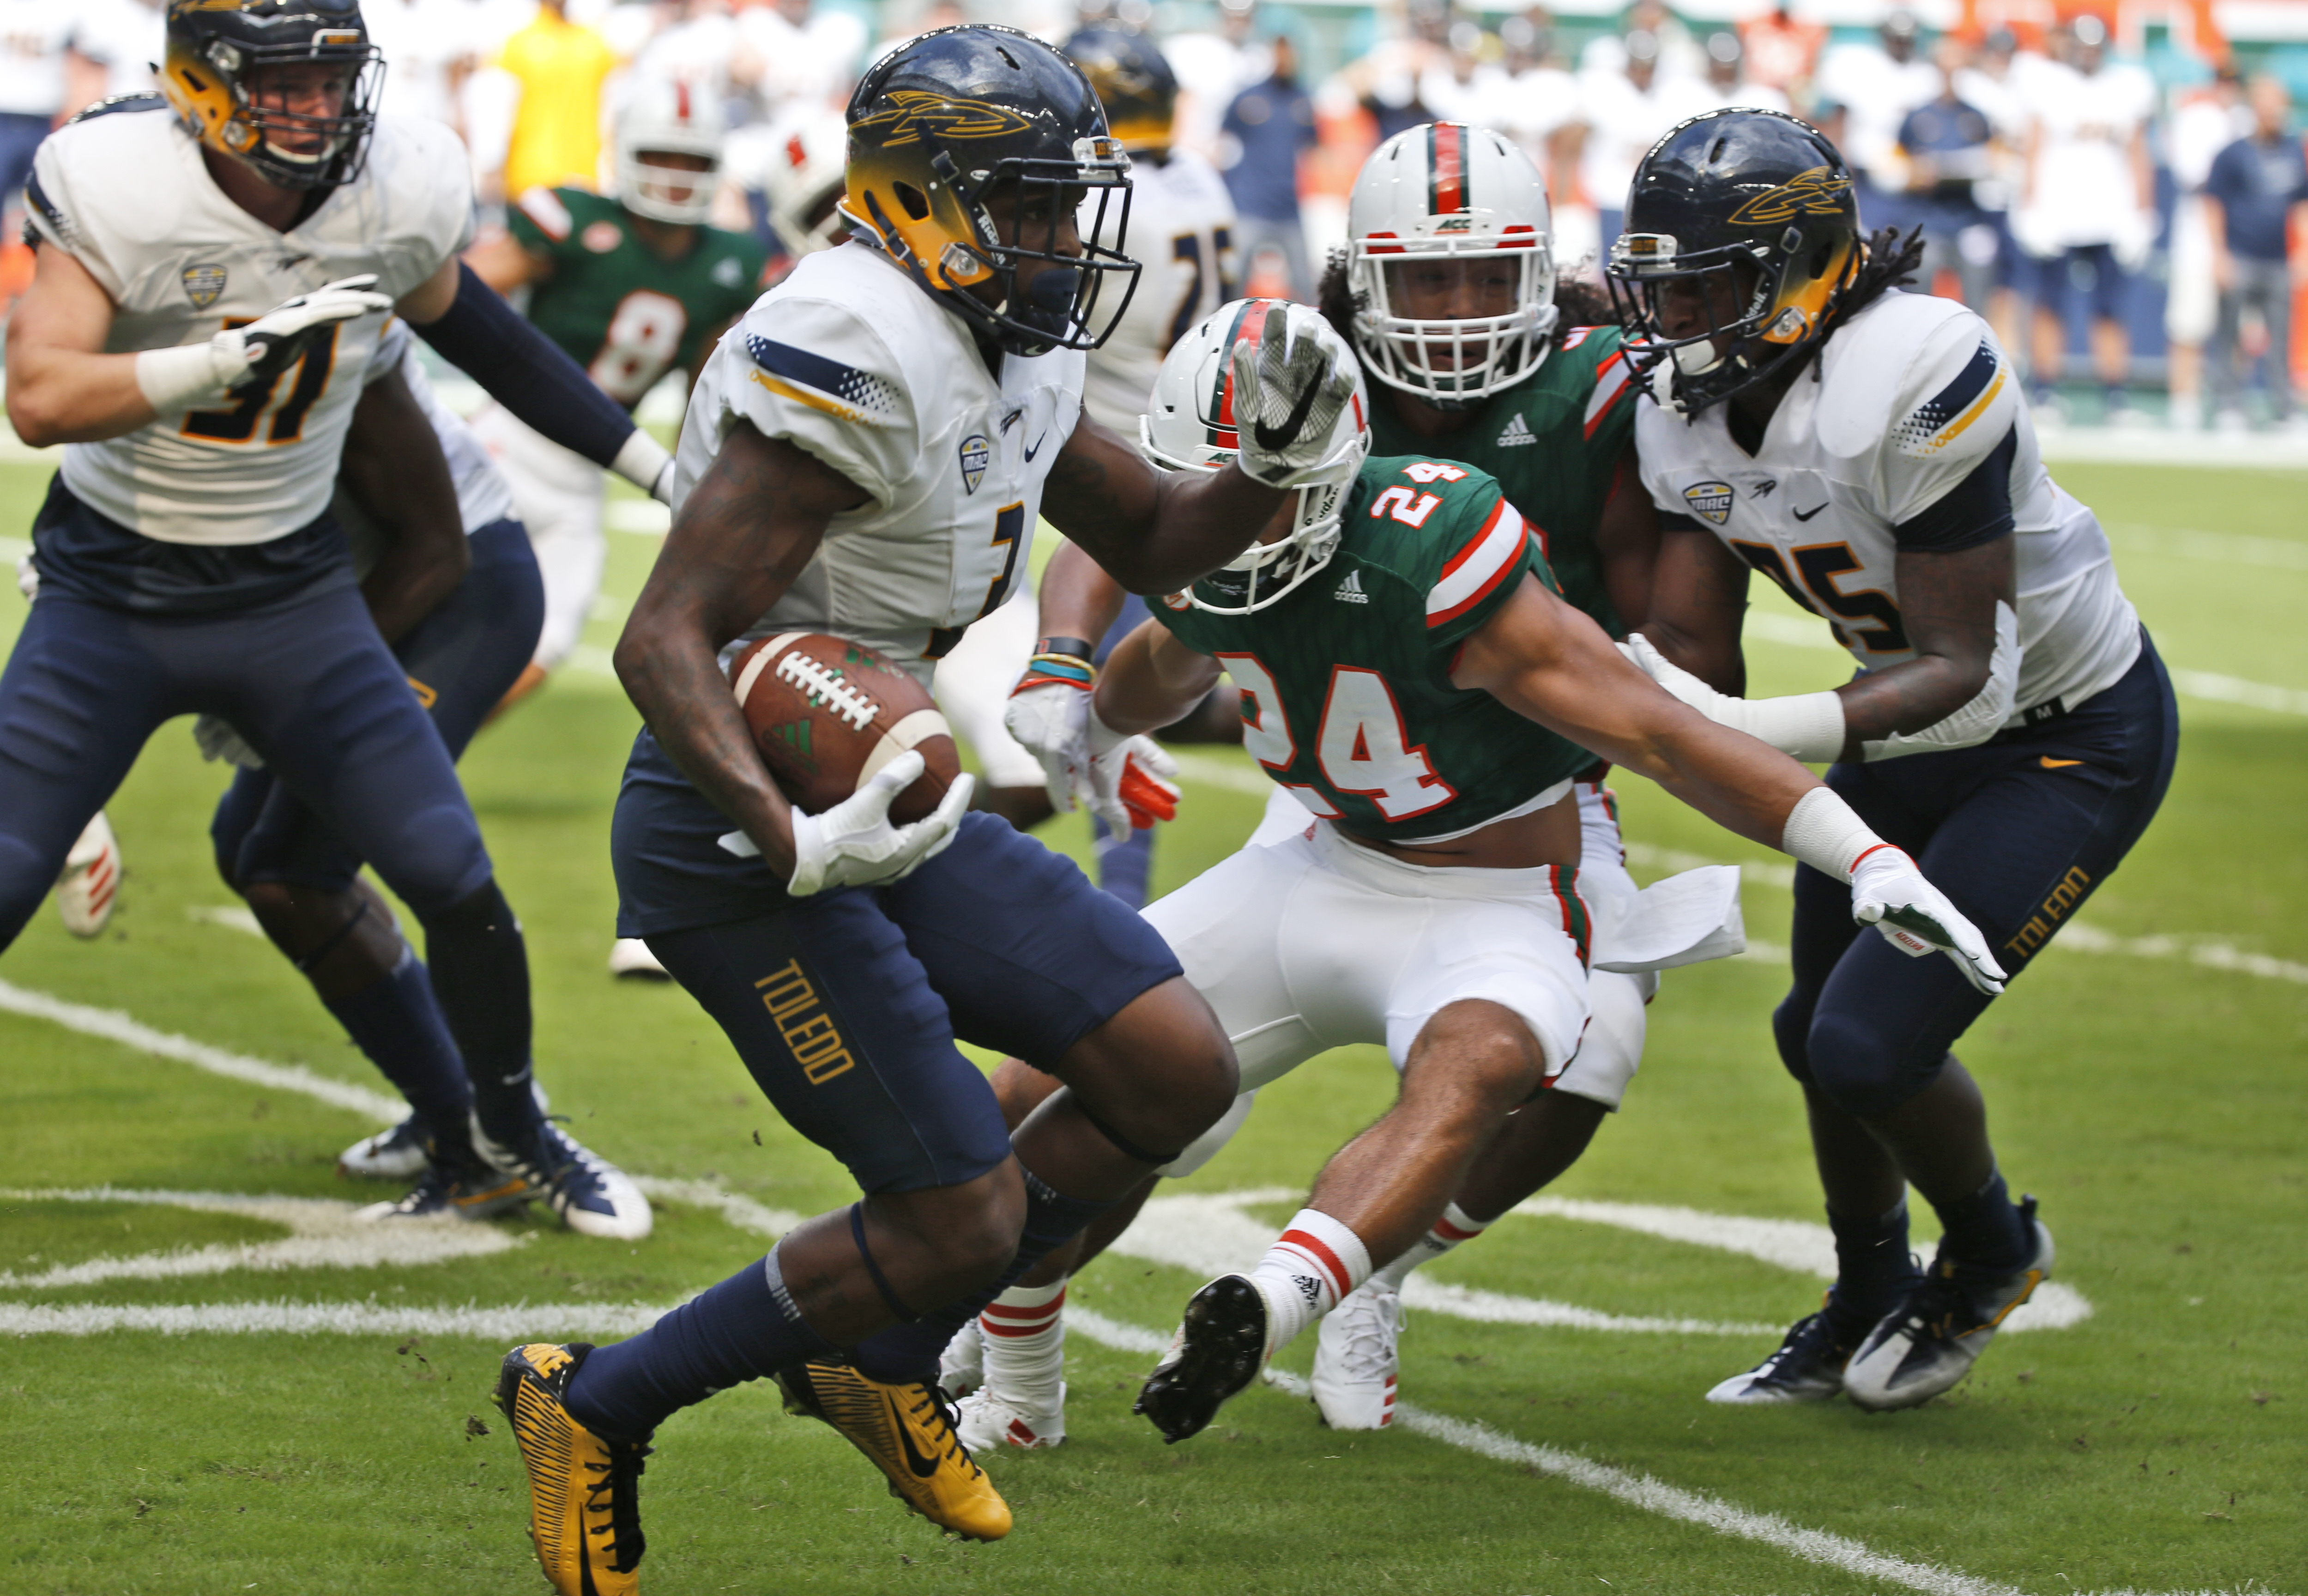 Closer Look At Ut Stats From Miami Game The Blade